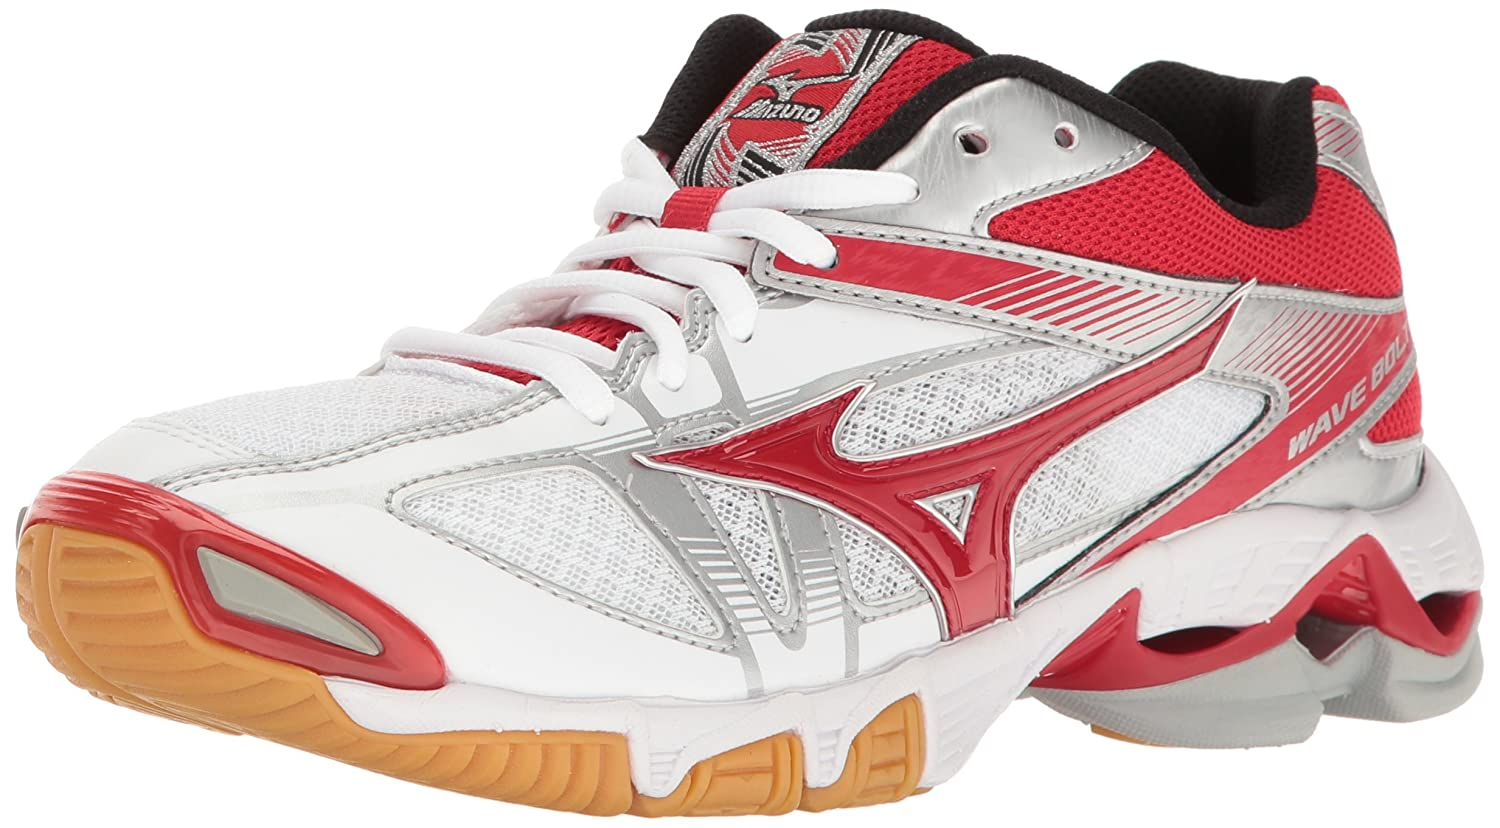 Mizuno Women's Wave Bolt 6 Volleyball-Shoes B01N75DVFK 13 B(M) US|White/Red